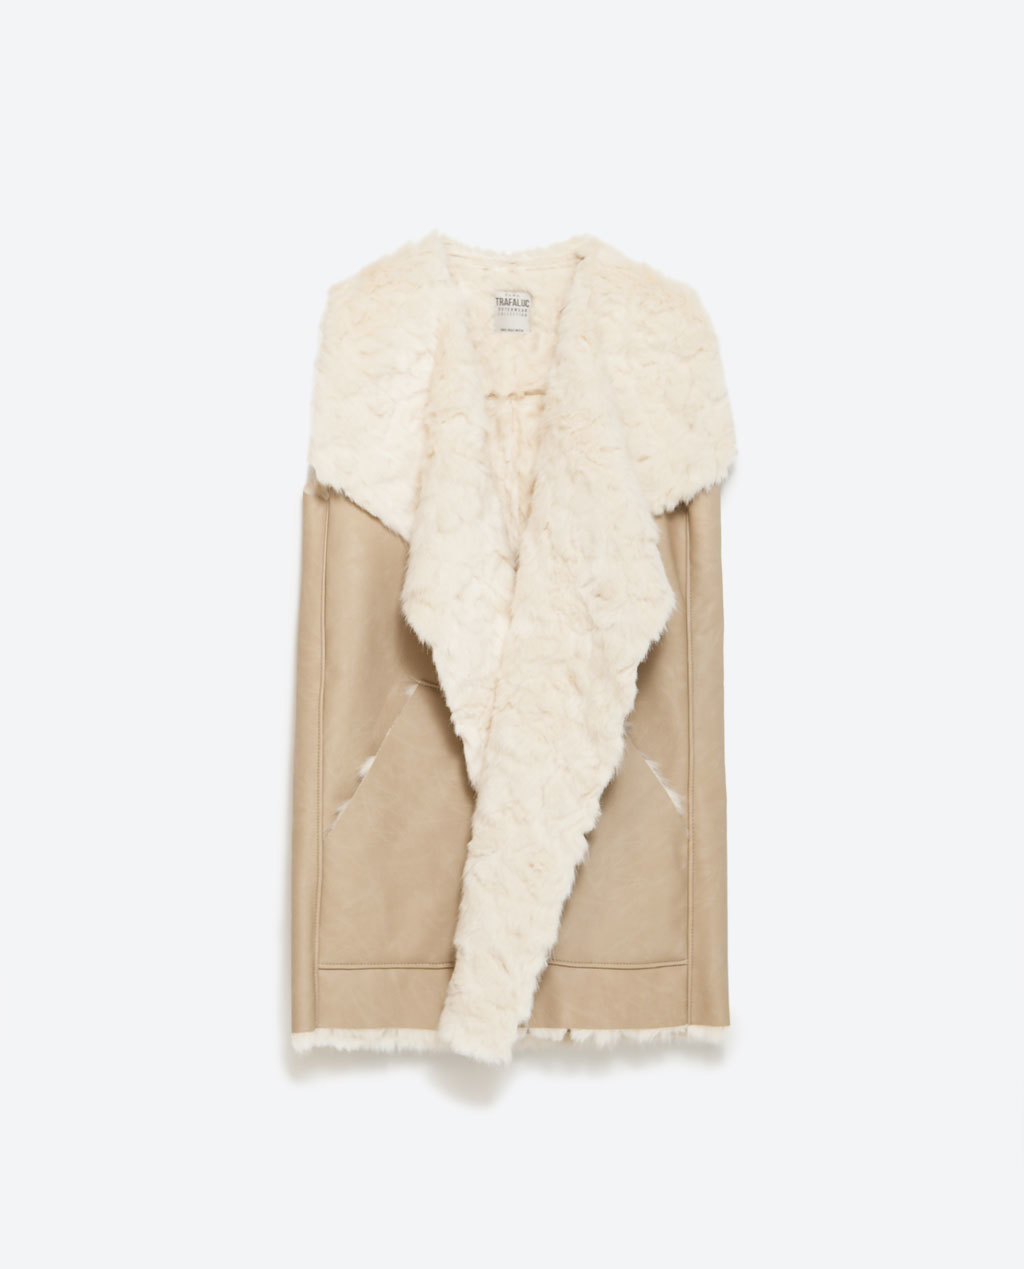 Gilet - sleeve style: sleeveless; style: gilet; collar: shawl/waterfall; length: below the bottom; secondary colour: ivory/cream; predominant colour: camel; occasions: casual, creative work; fit: straight cut (boxy); fibres: viscose/rayon - 100%; sleeve length: sleeveless; collar break: low/open; pattern type: fabric; pattern: colourblock; texture group: sheepskin; season: a/w 2015